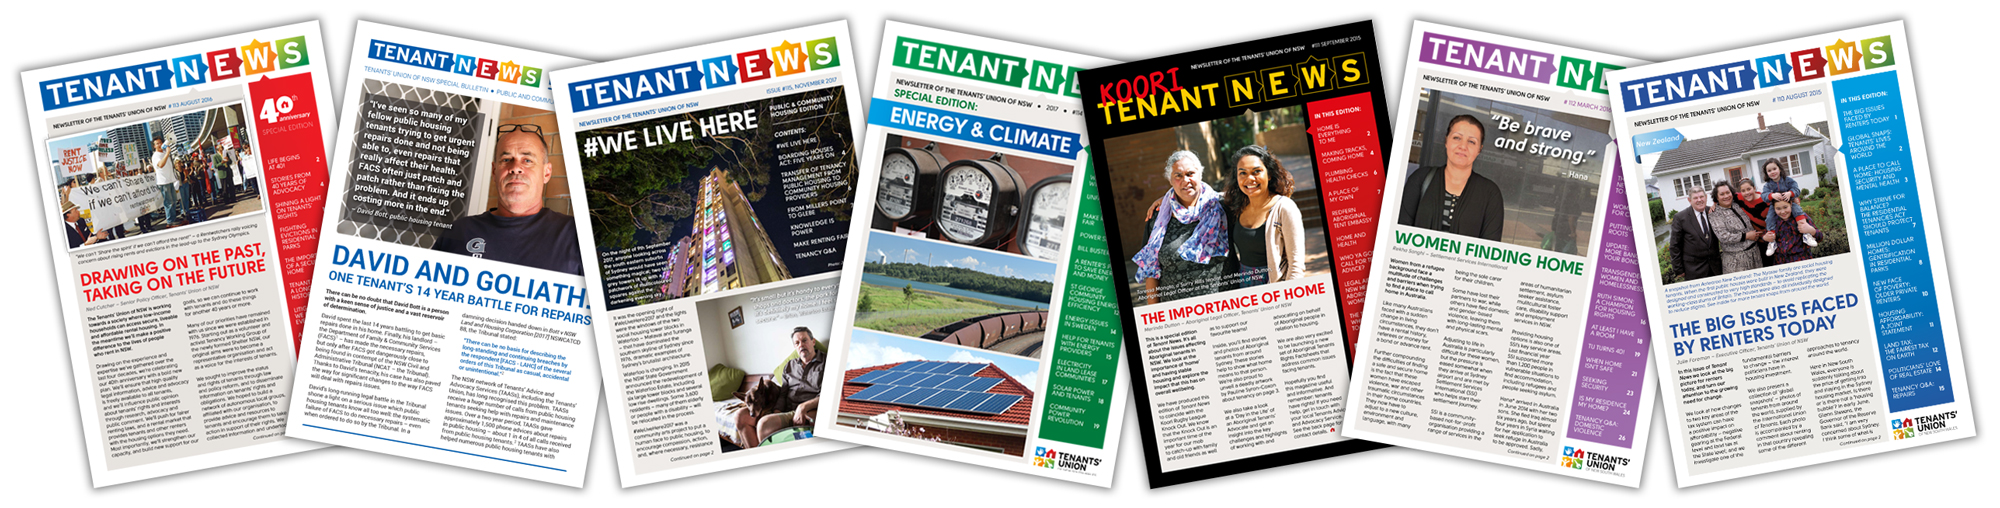 Tenant News covers